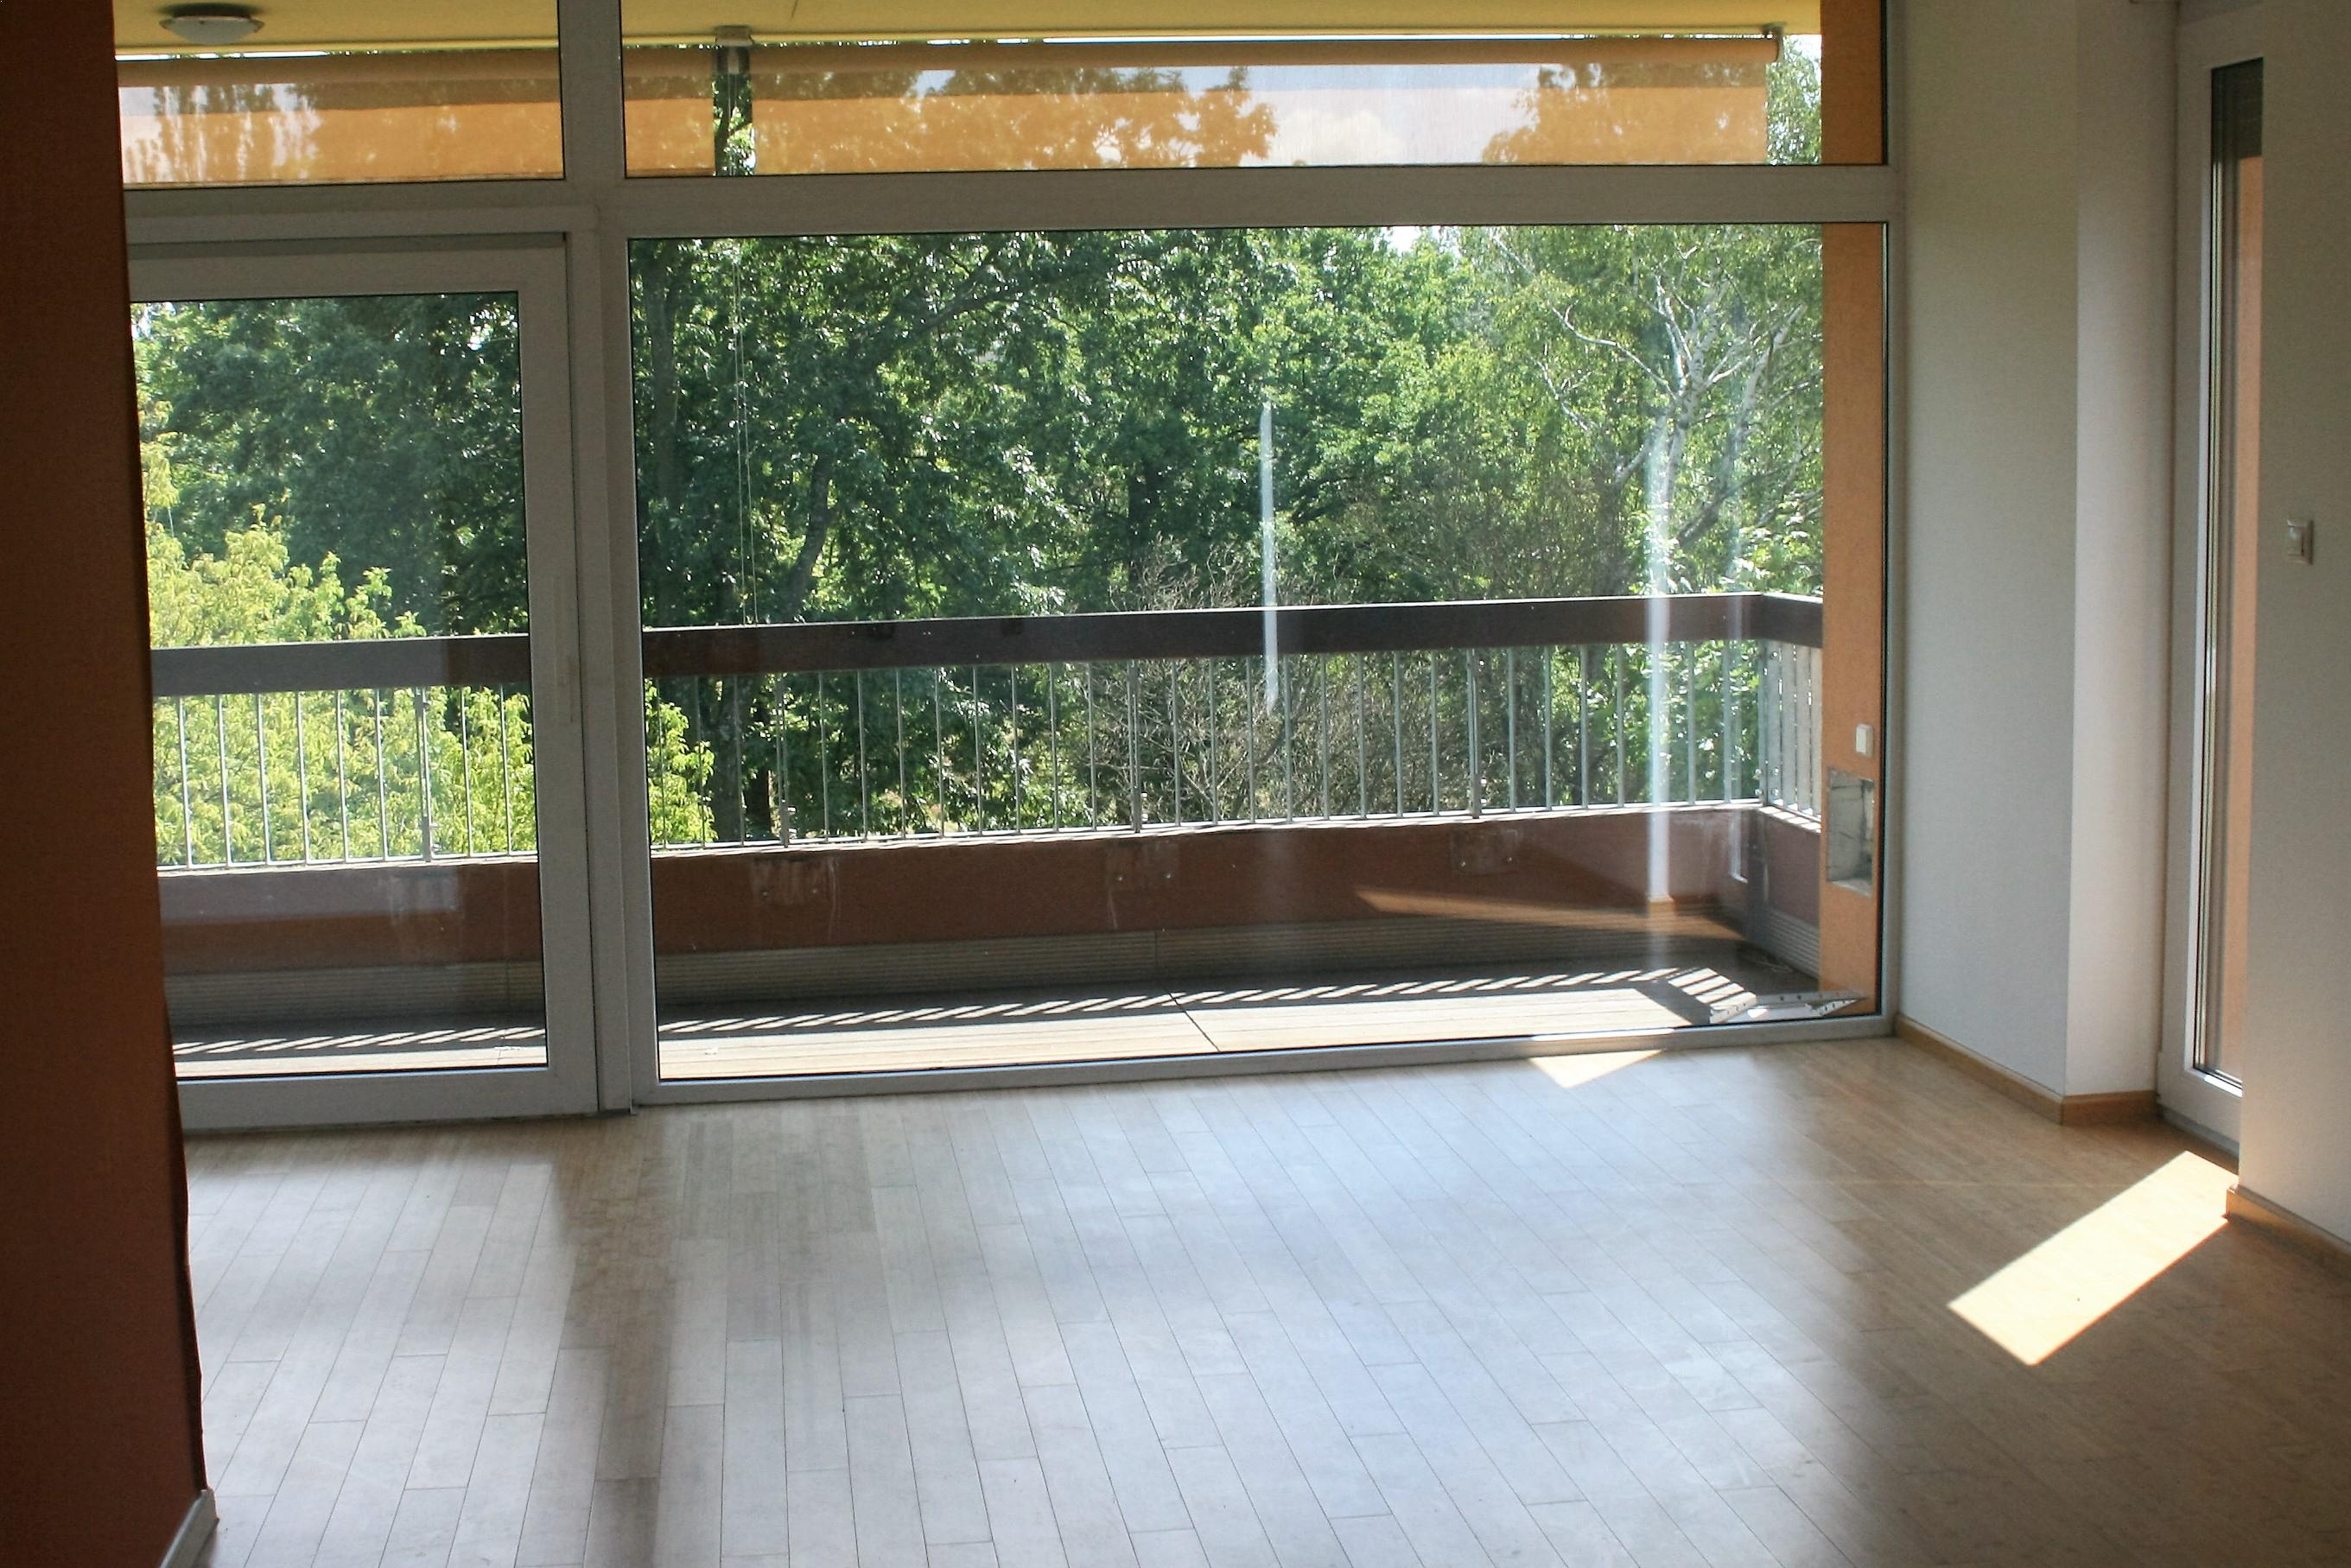 109sqm apartment with panoramic roofmterrace and swiming pool in Óbuda is for sale